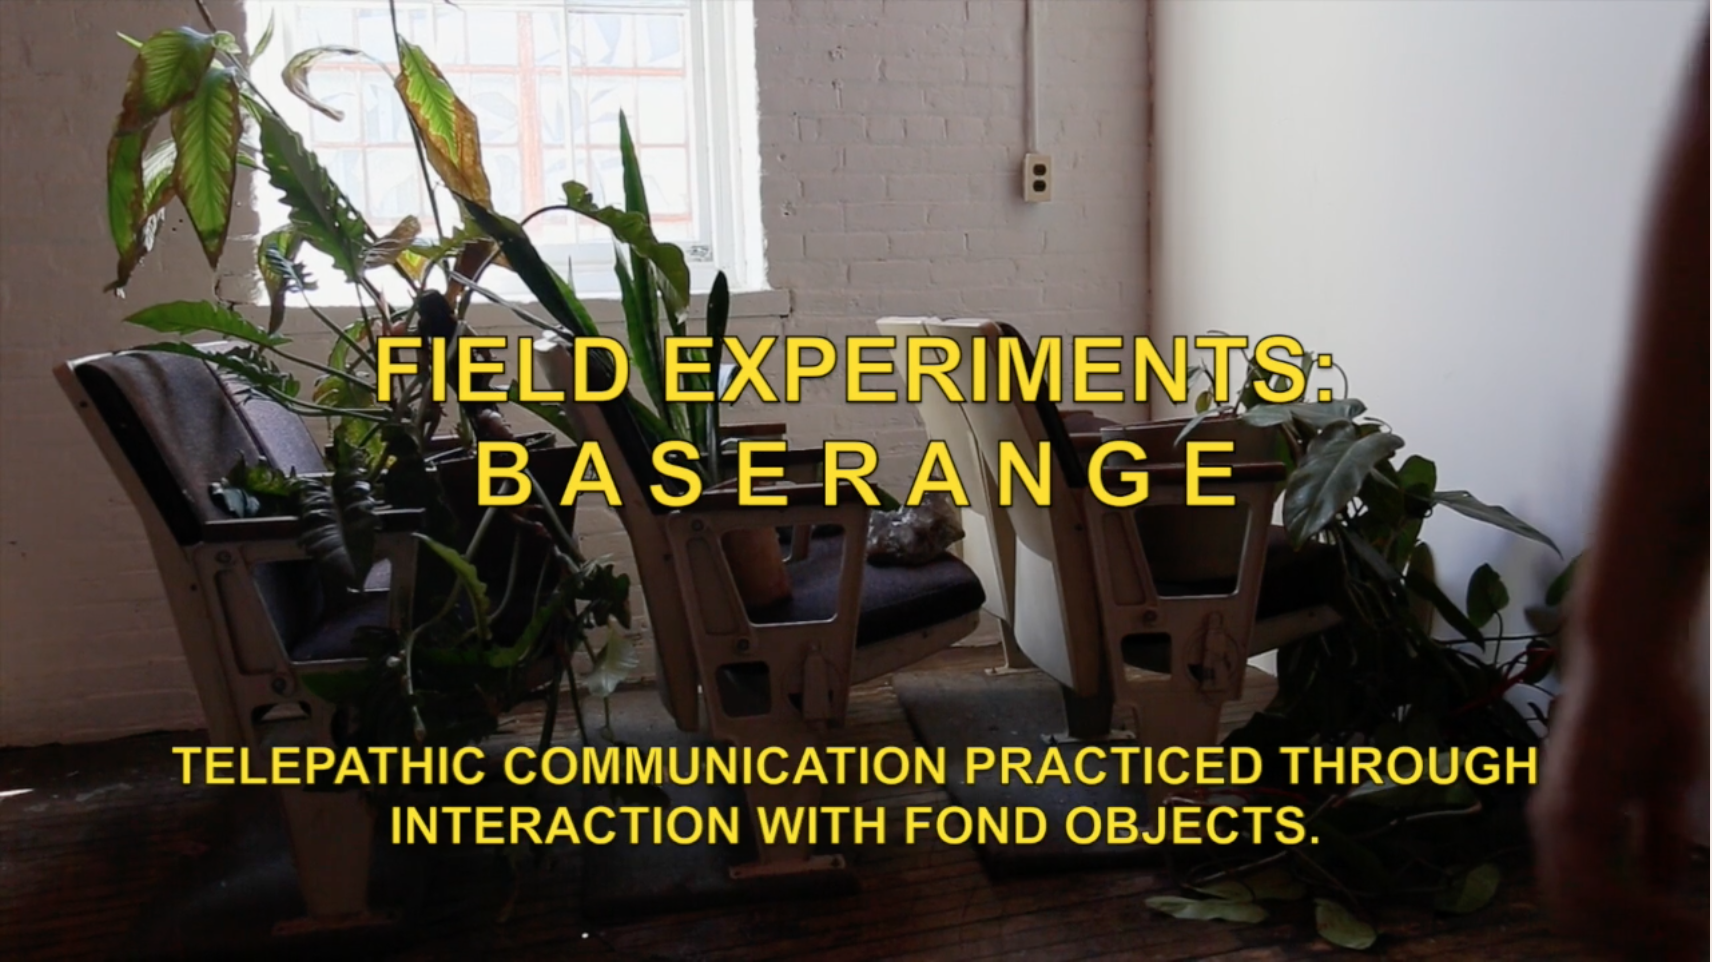 field experiments: base range  2017 telepathic communication through ritual interaction with fond objects created and collected by the artist   click through for a short film documenting the process